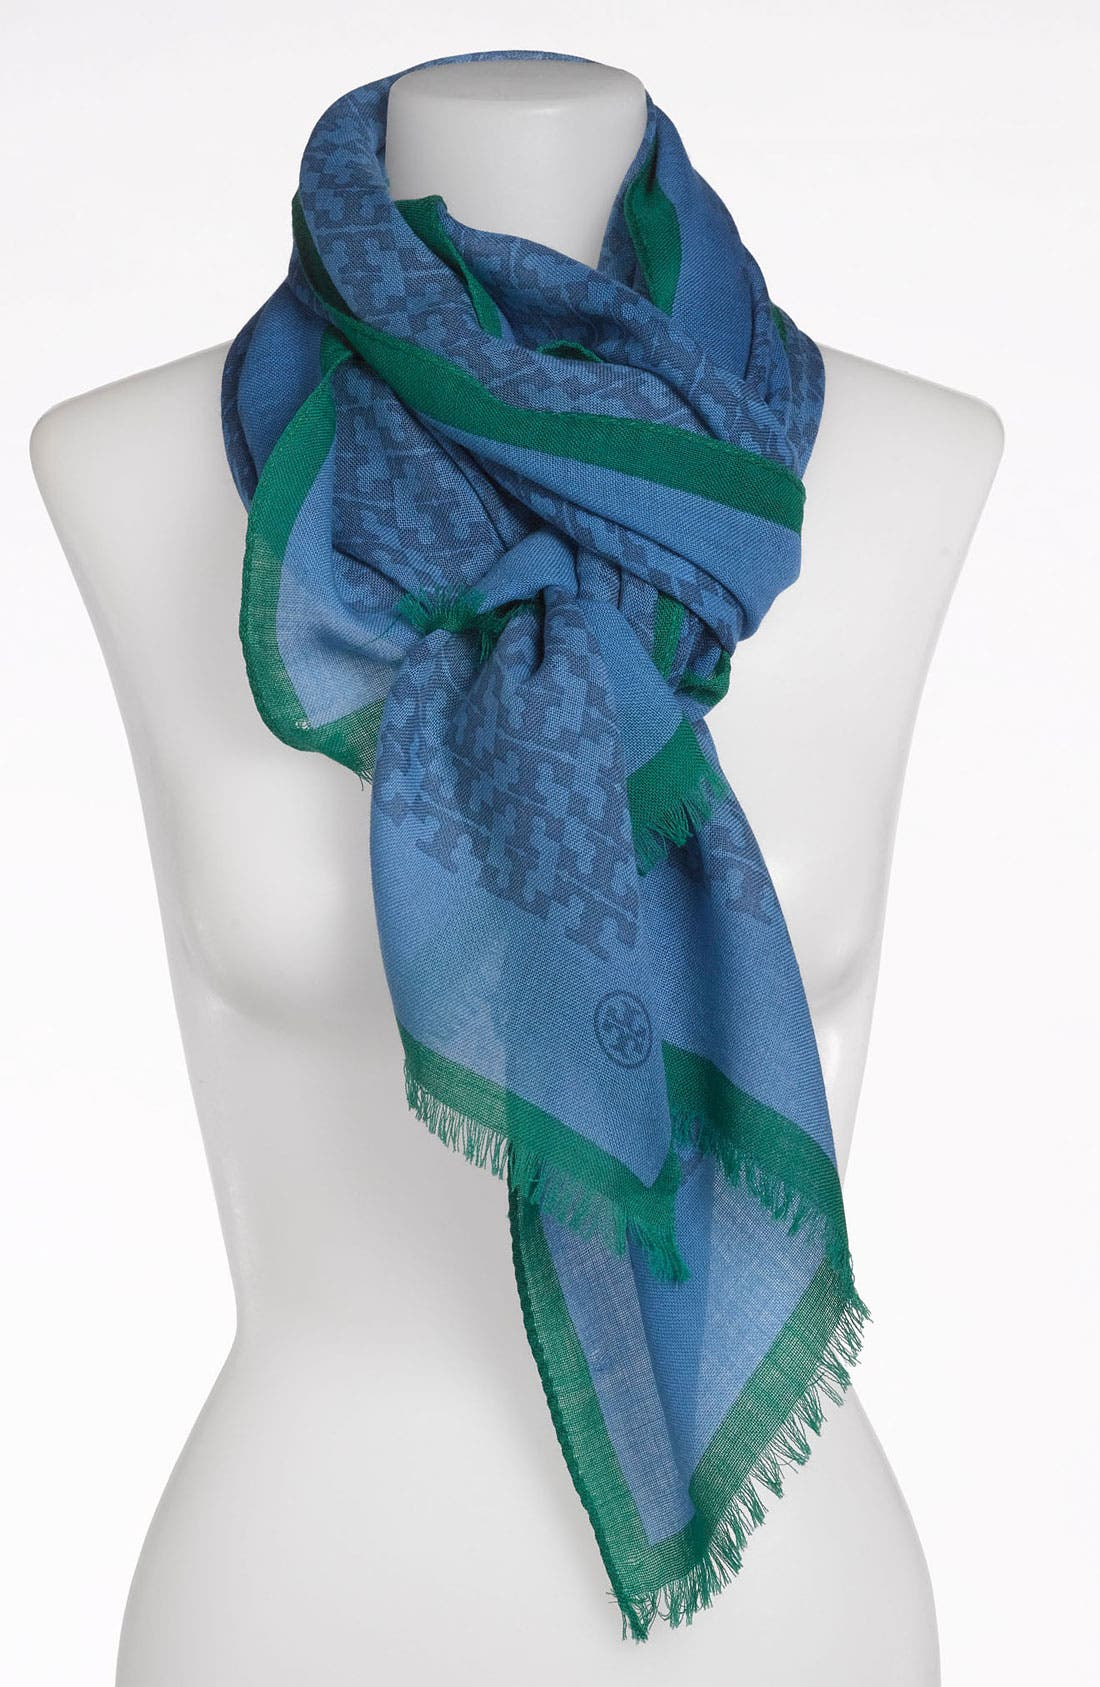 Main Image - Tory Burch 'Allover T Print' Wool Scarf